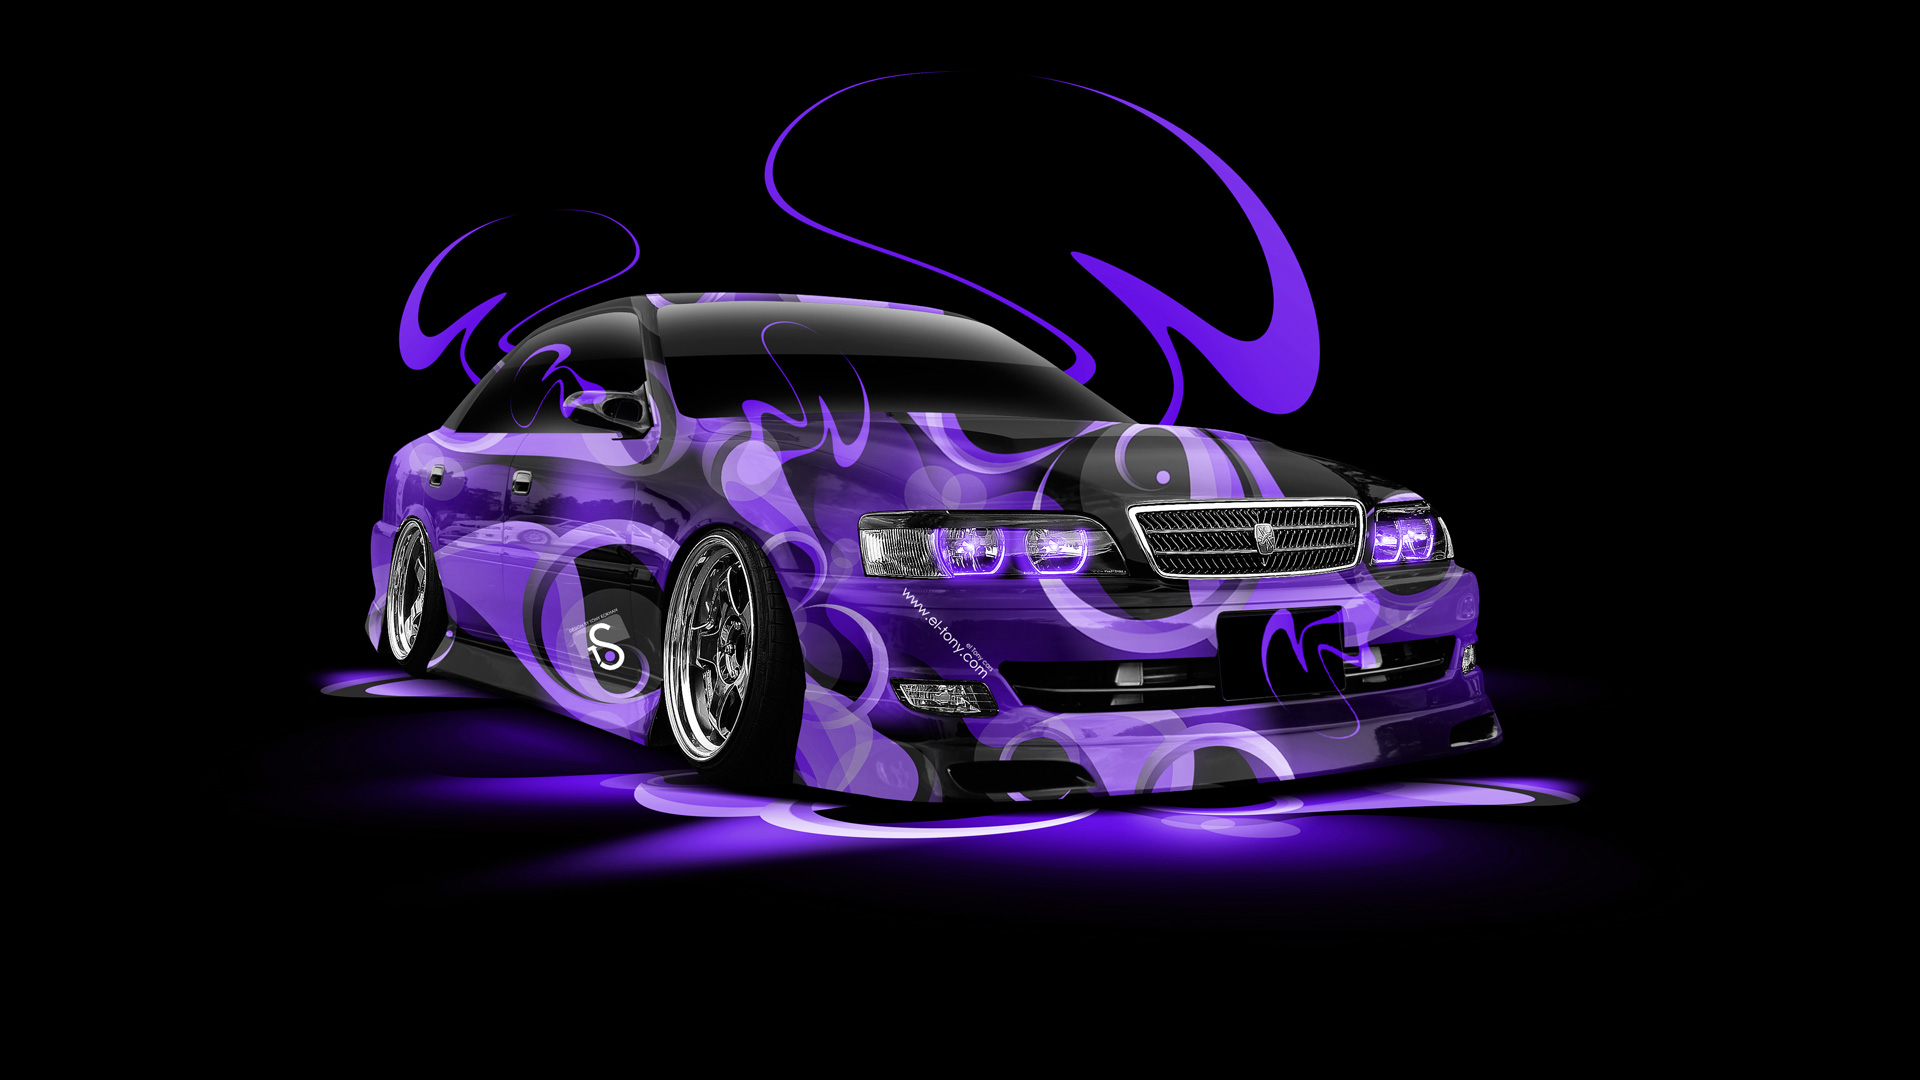 Wonderful ... Toyota Chaser JZX100 Super Abstract Car 2014